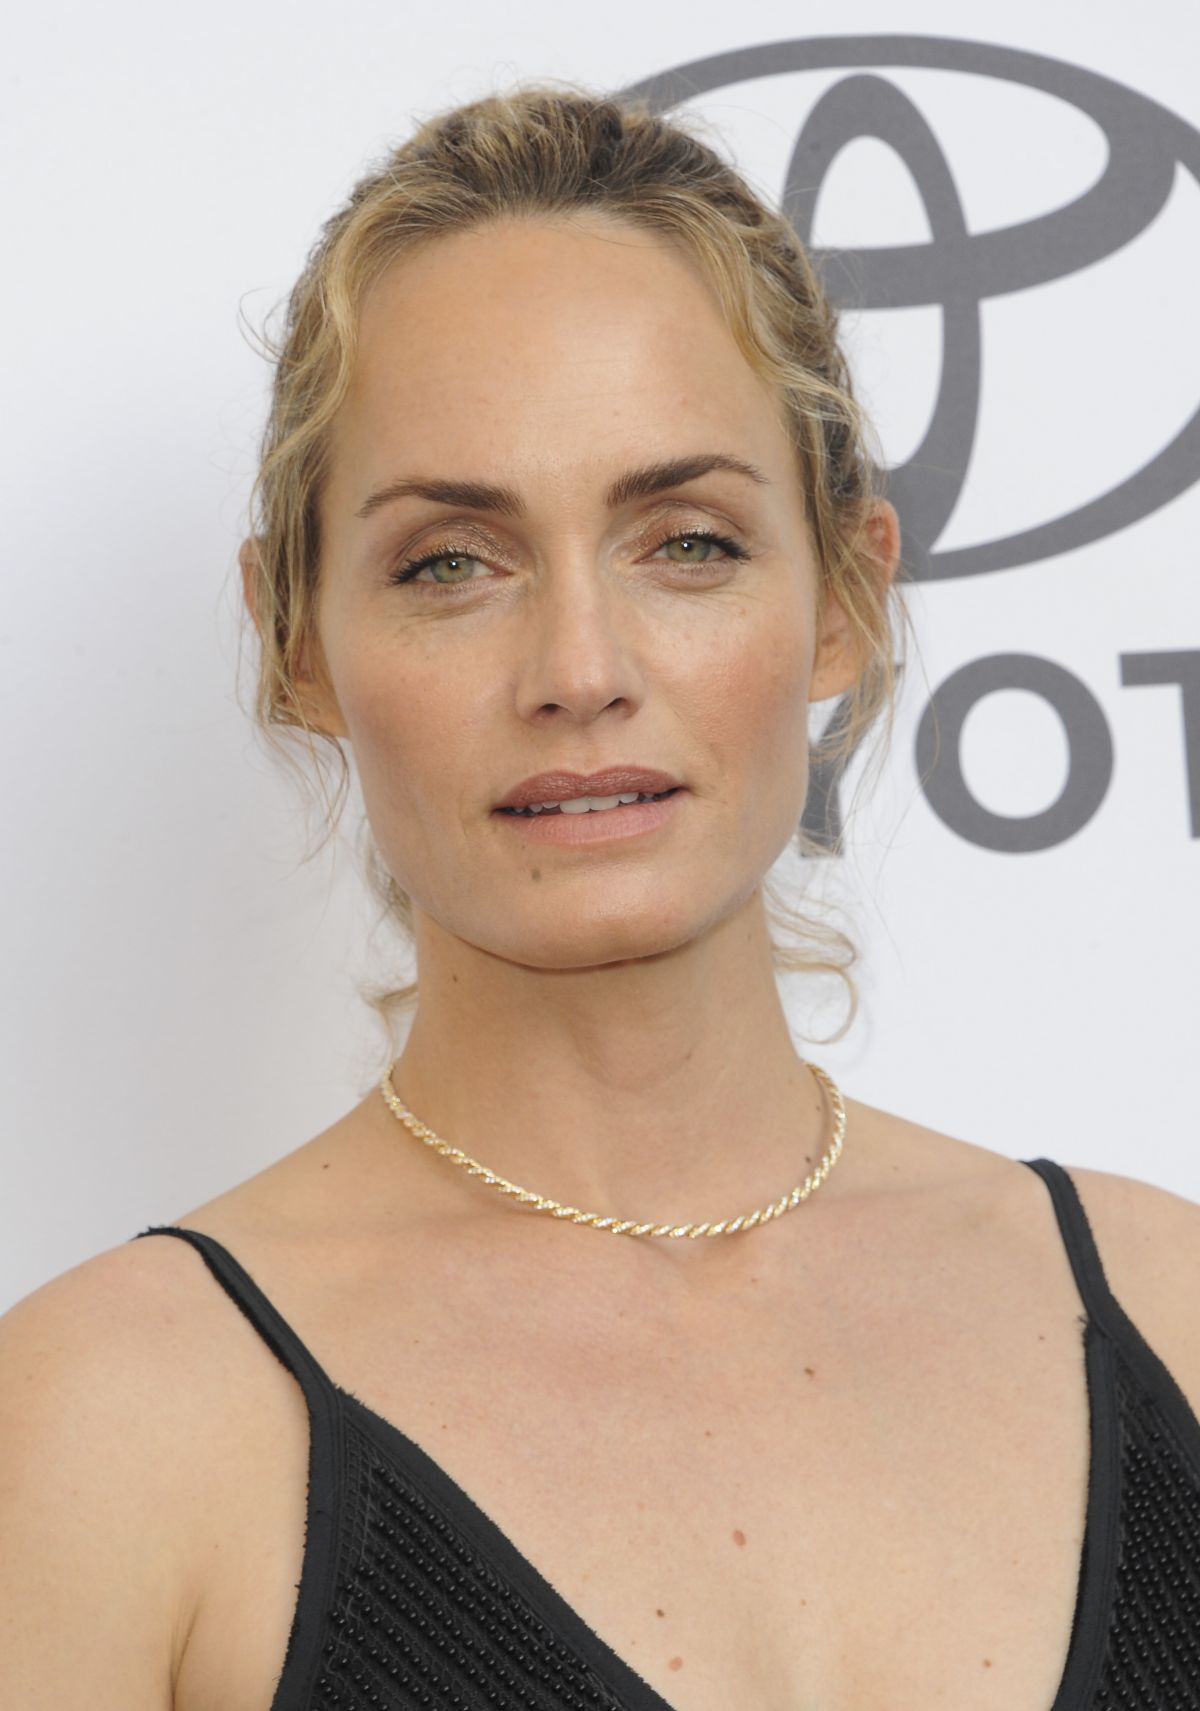 Images Amber Valletta naked (42 foto and video), Sexy, Bikini, Boobs, butt 2020